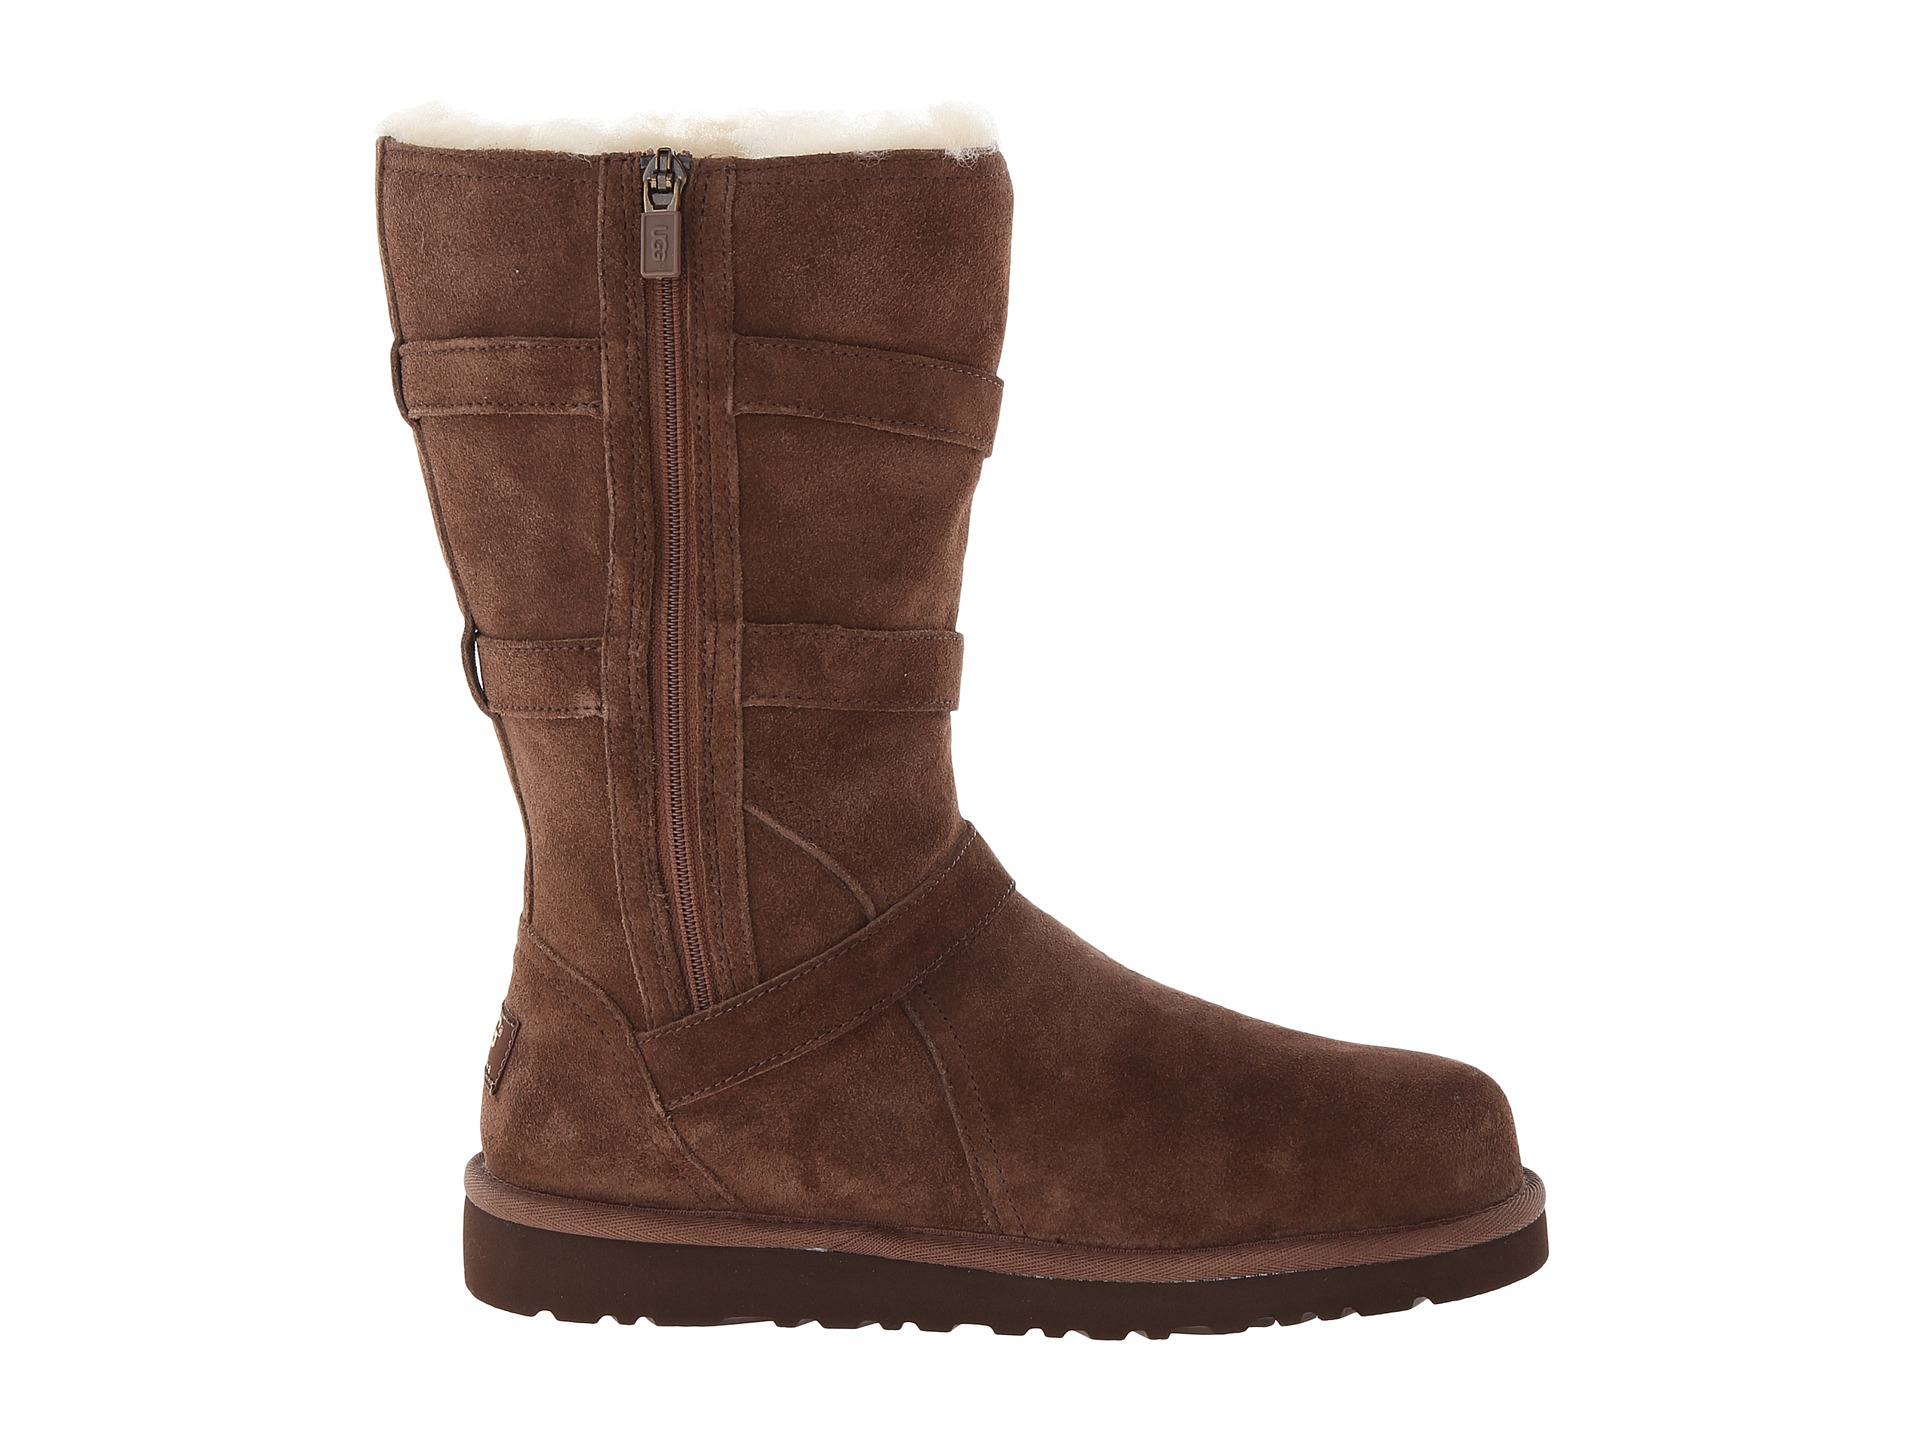 f33db6a7cd4 Where Do I Find Ugg Boots - cheap watches mgc-gas.com